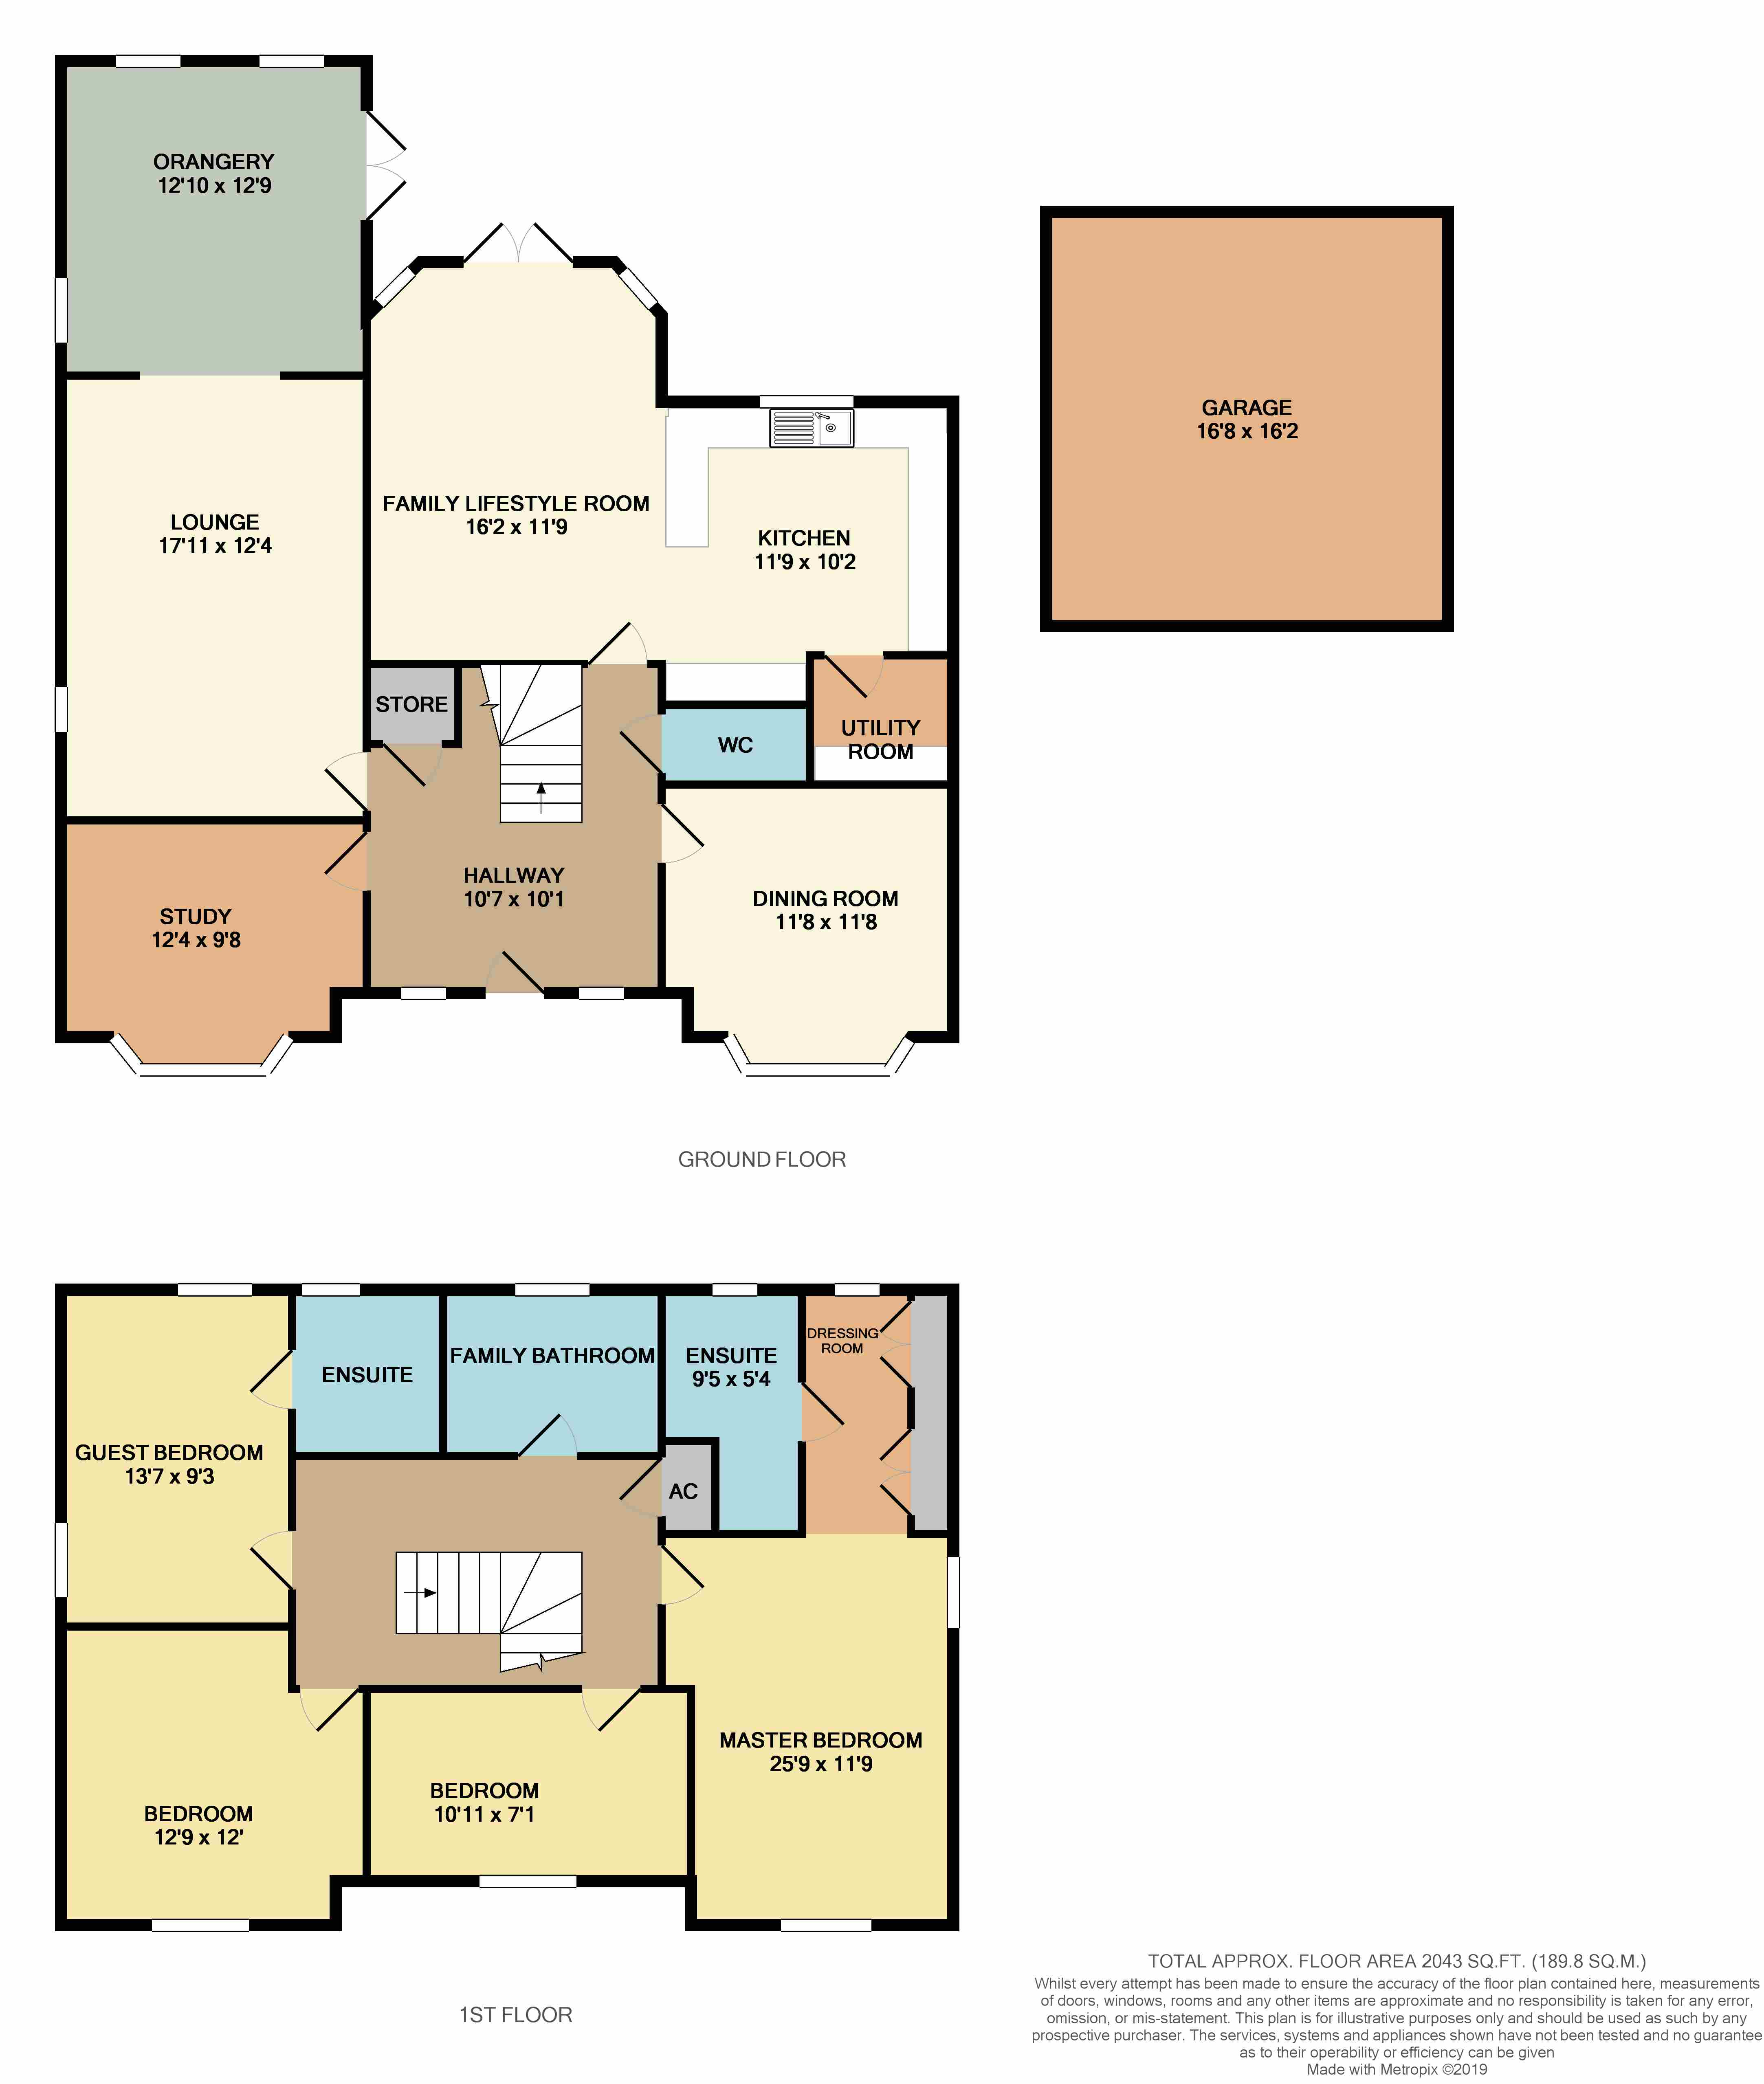 Floorplans For Chatham Road, Meon Vale, Stratford-upon-Avon